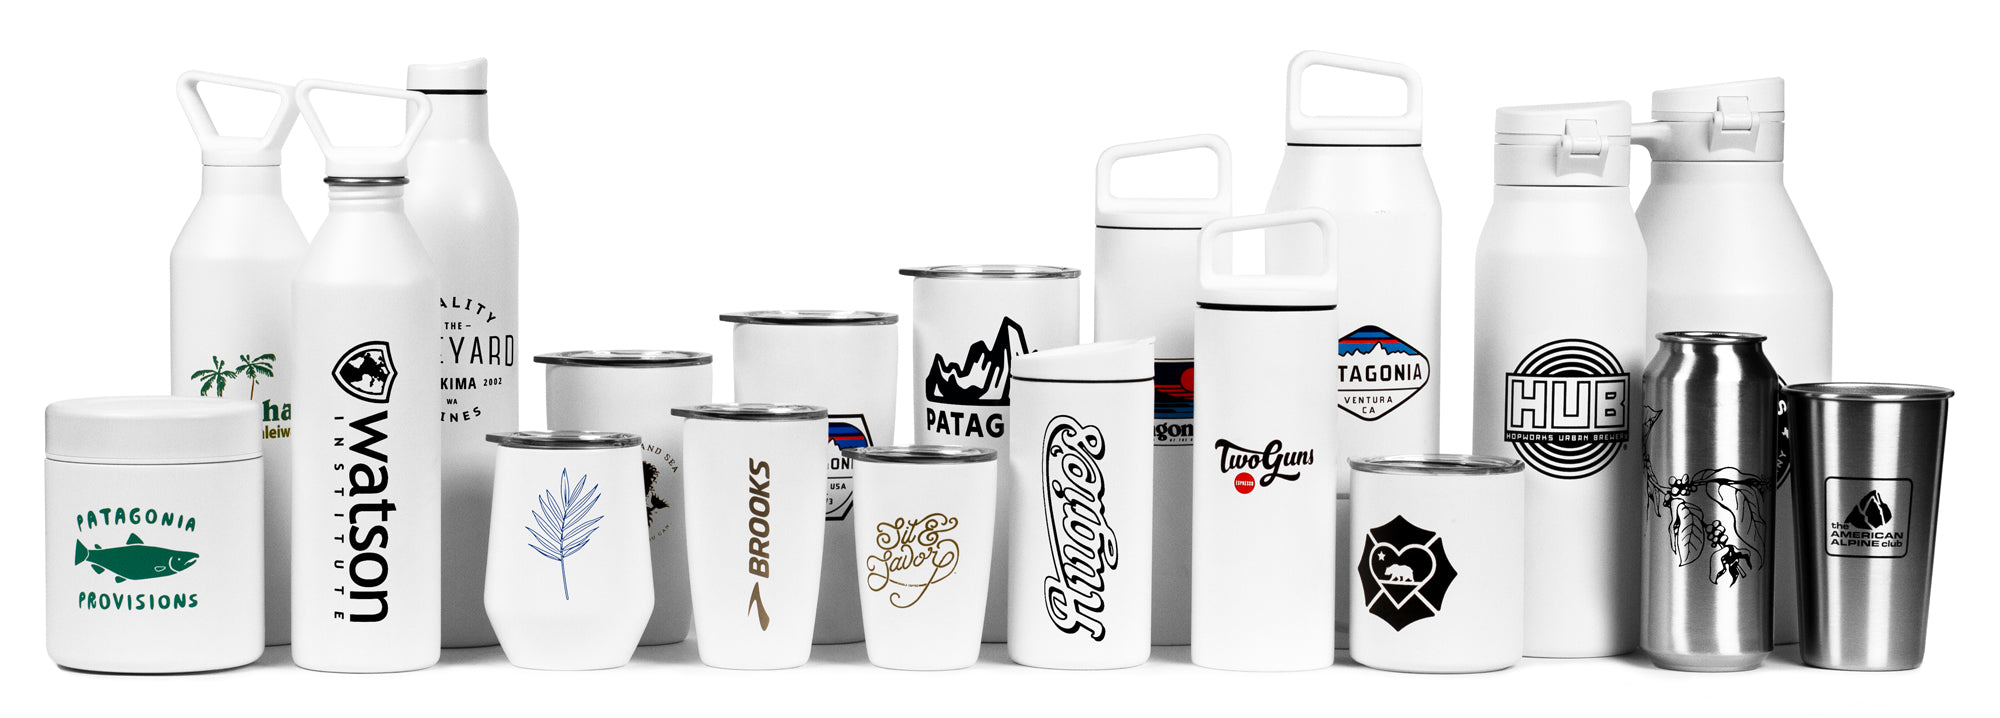 bdfd7cff88 Create custom drinkware that showcases your brand, promotes a healthy  environment and empowers lives.